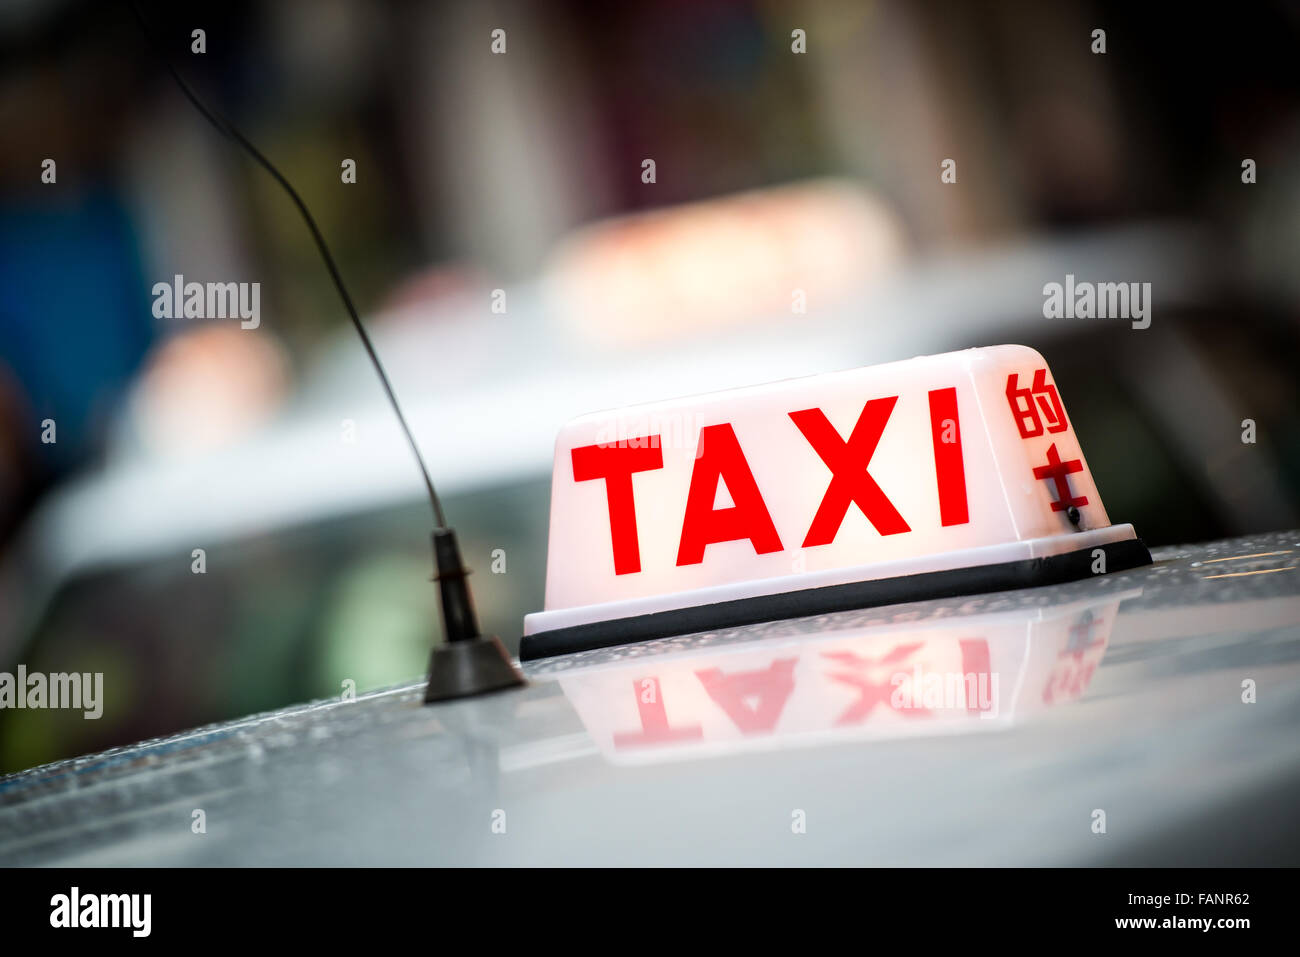 Red Taxi Stock Photos & Red Taxi Stock Images